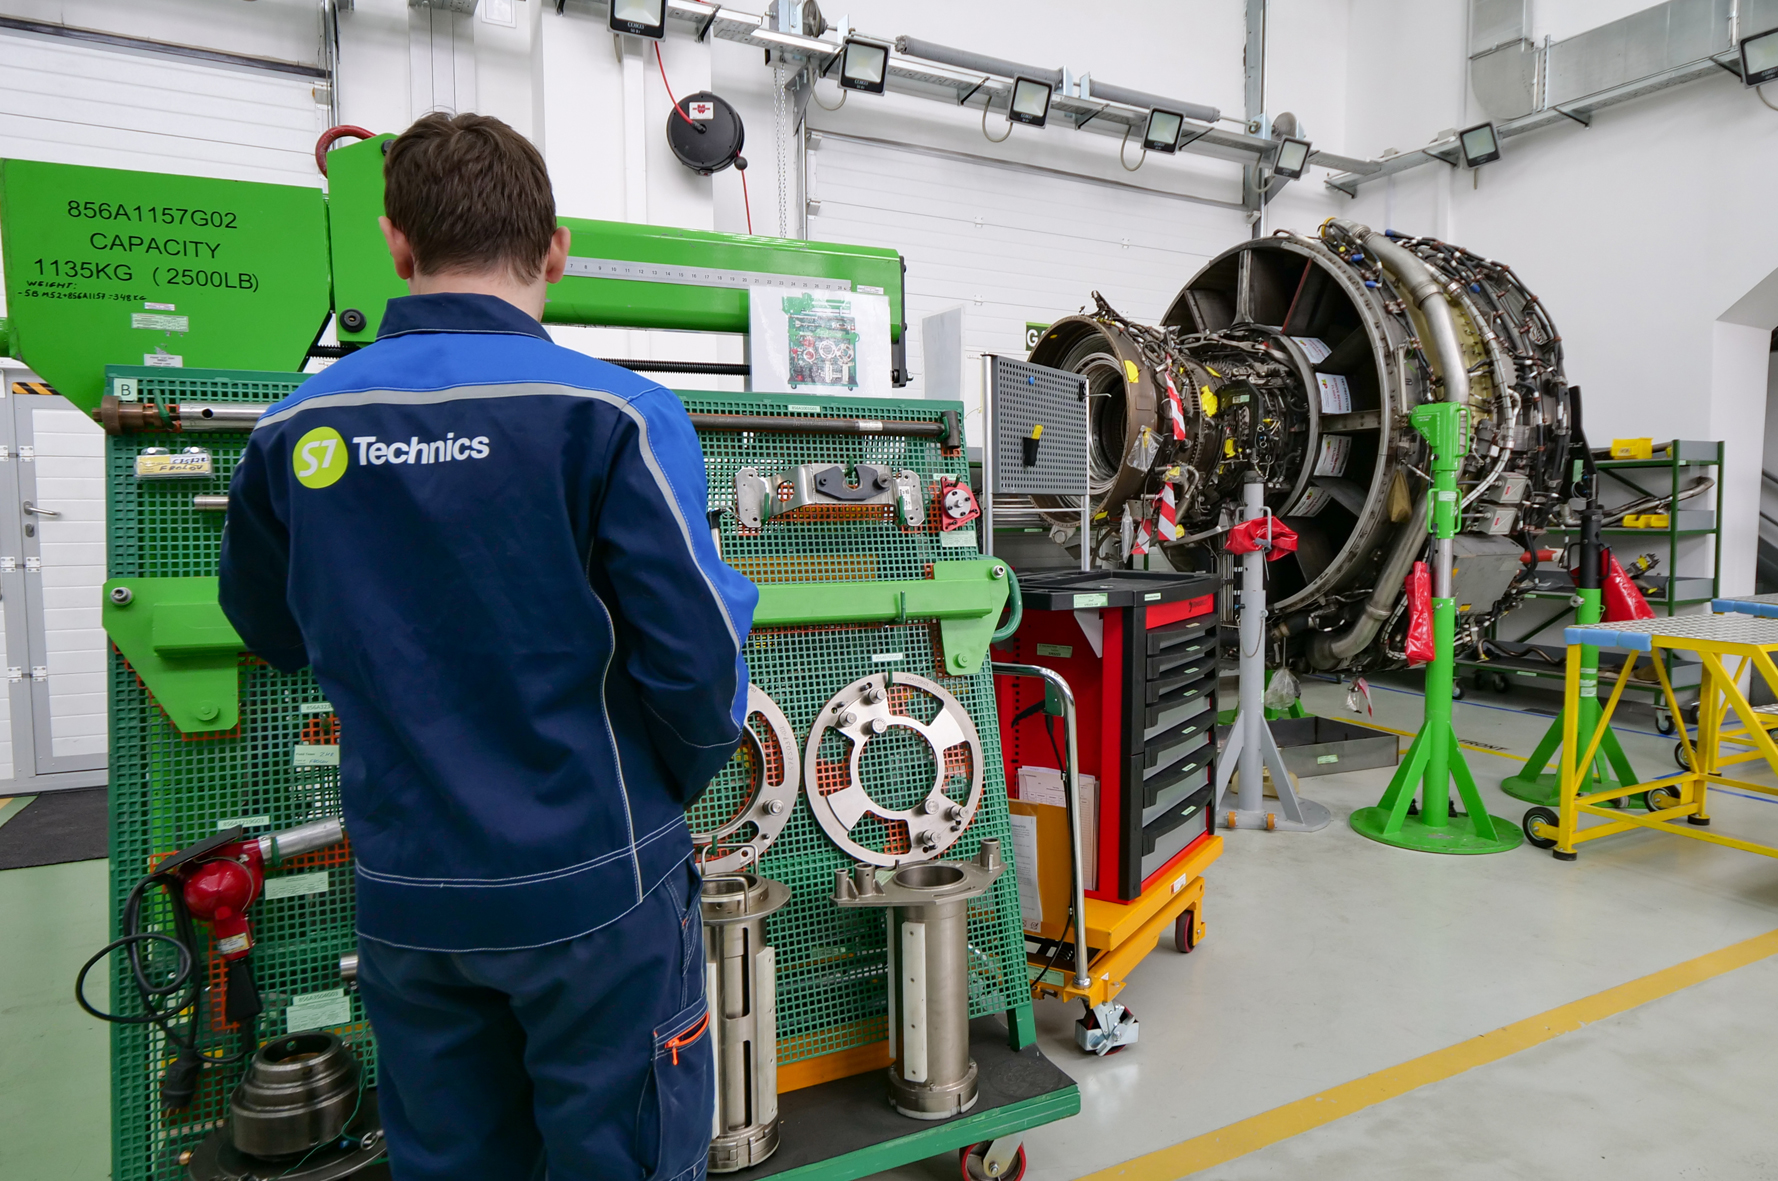 the s7 technics repair facility allows customers from russia and abroad to  benefit from highest standards of quality for engine maintenance, reduced  costs